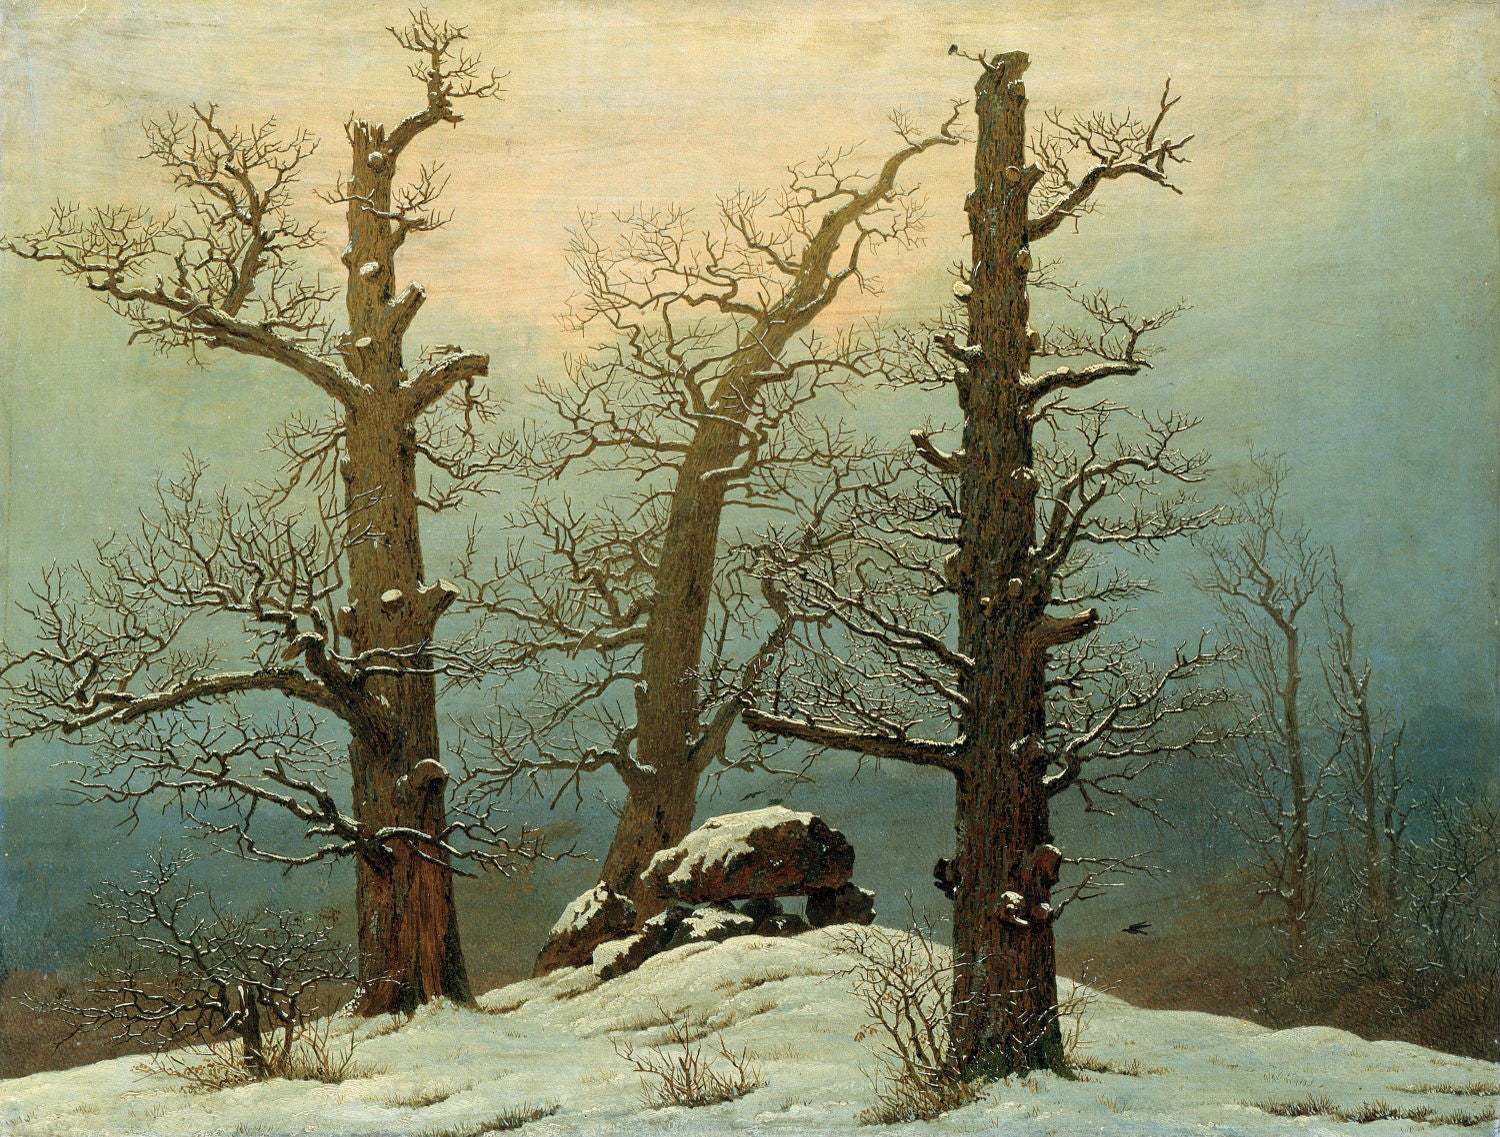 Caspar David Friedrich | Buy Posters, Frames, Canvas, Digital Art & Large Size Prints Of The Famous Old Master's Artworks